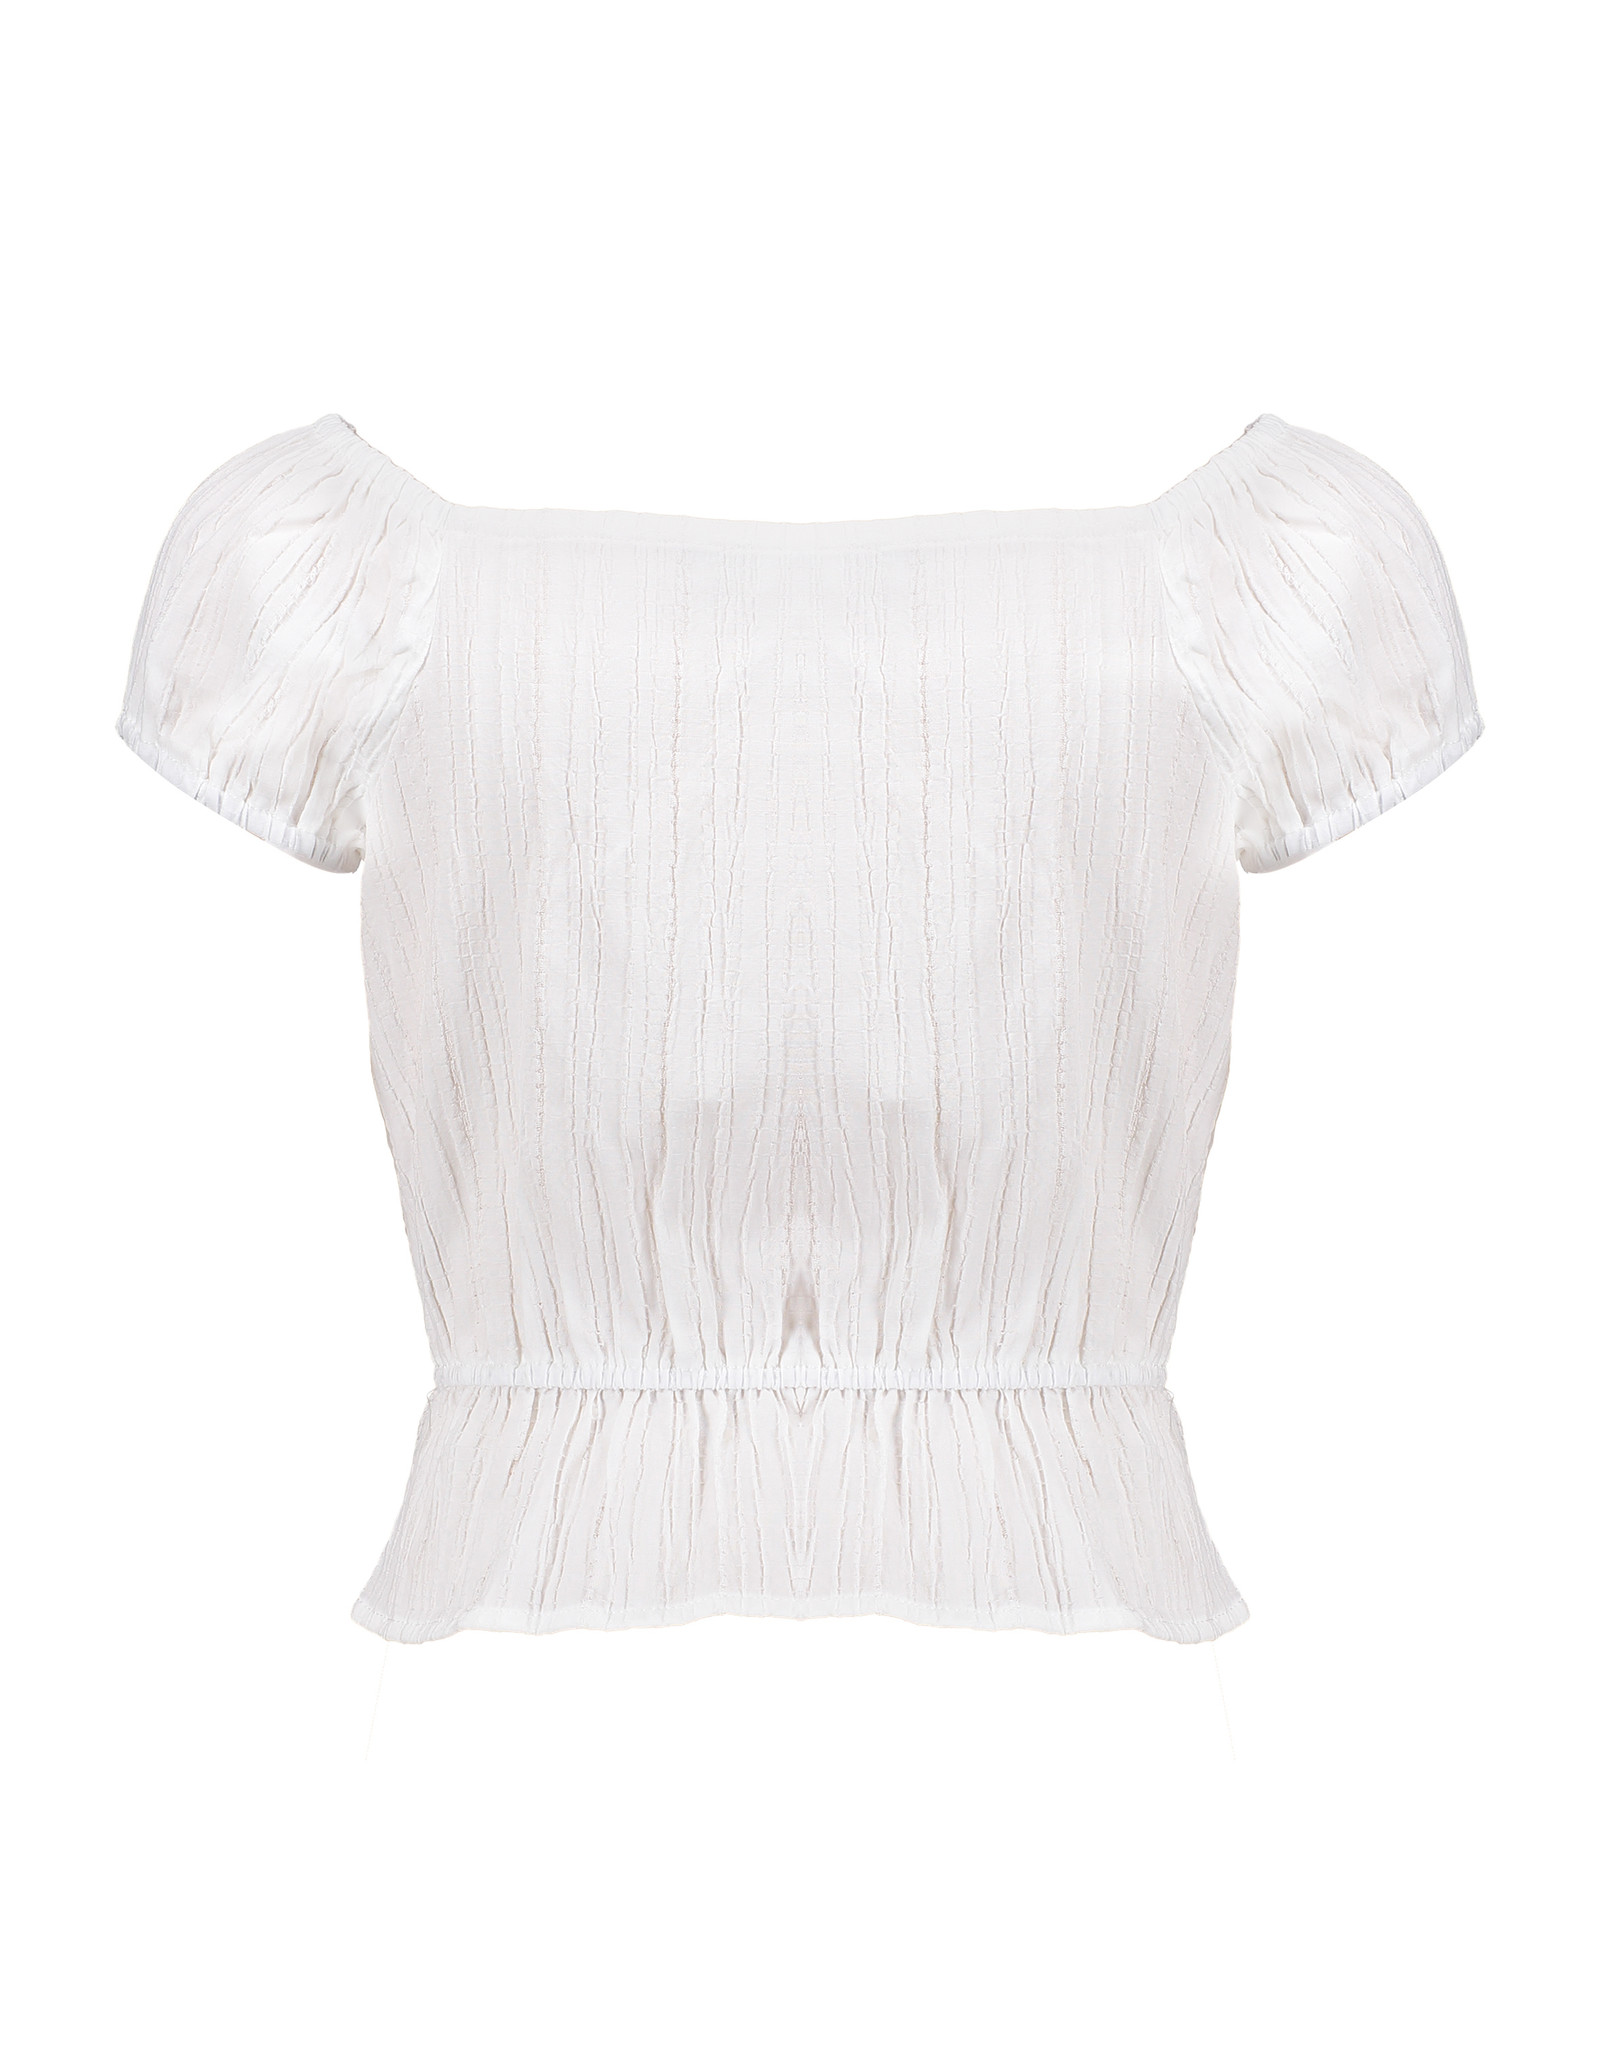 Frankie and Liberty Stacey Blouse